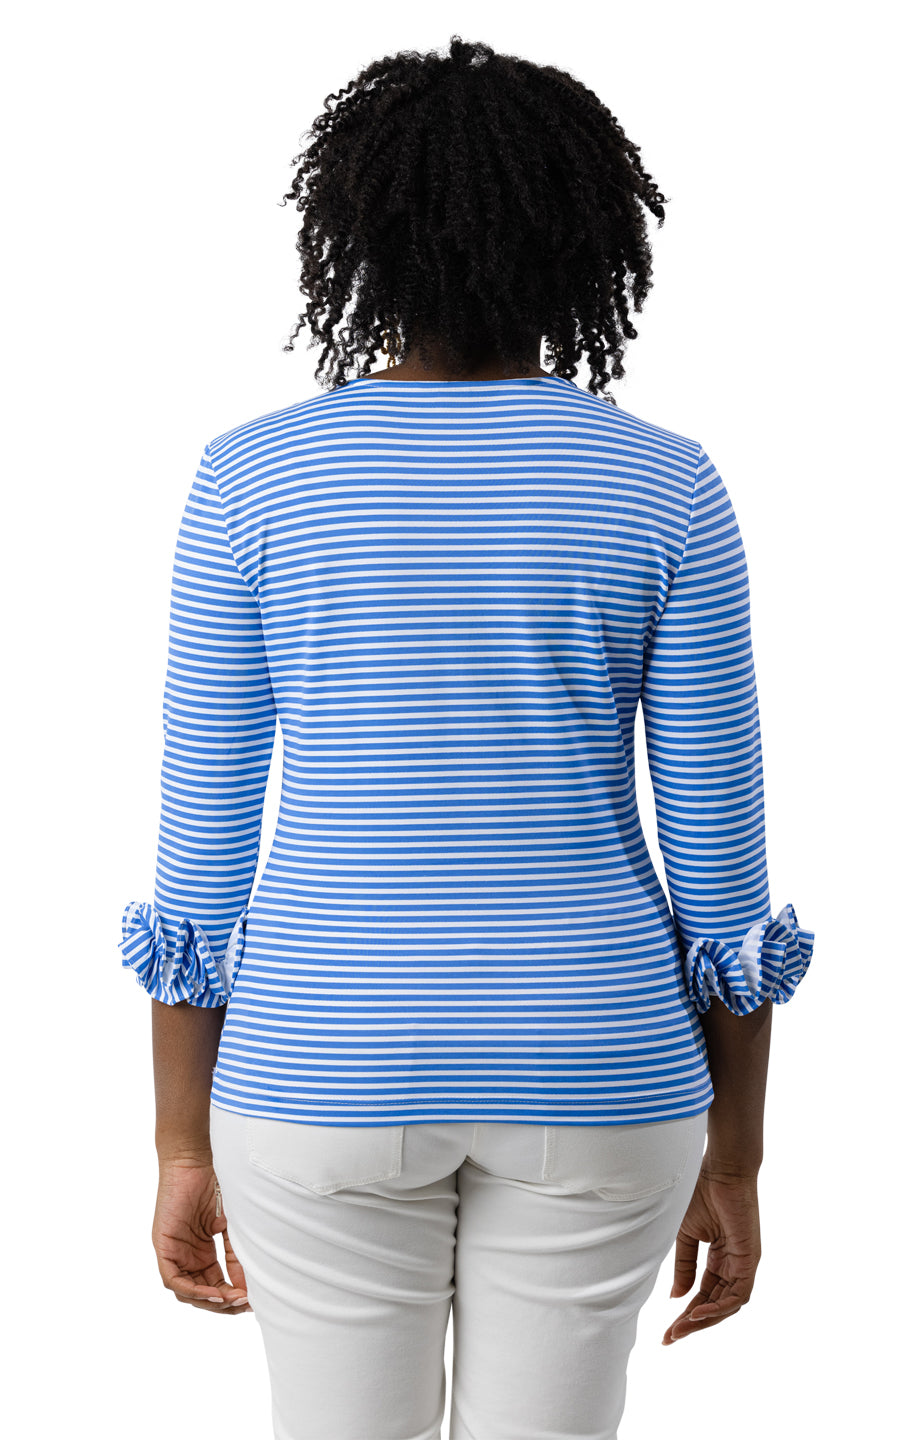 Caroline Top - Regatta Blue/White Stripe